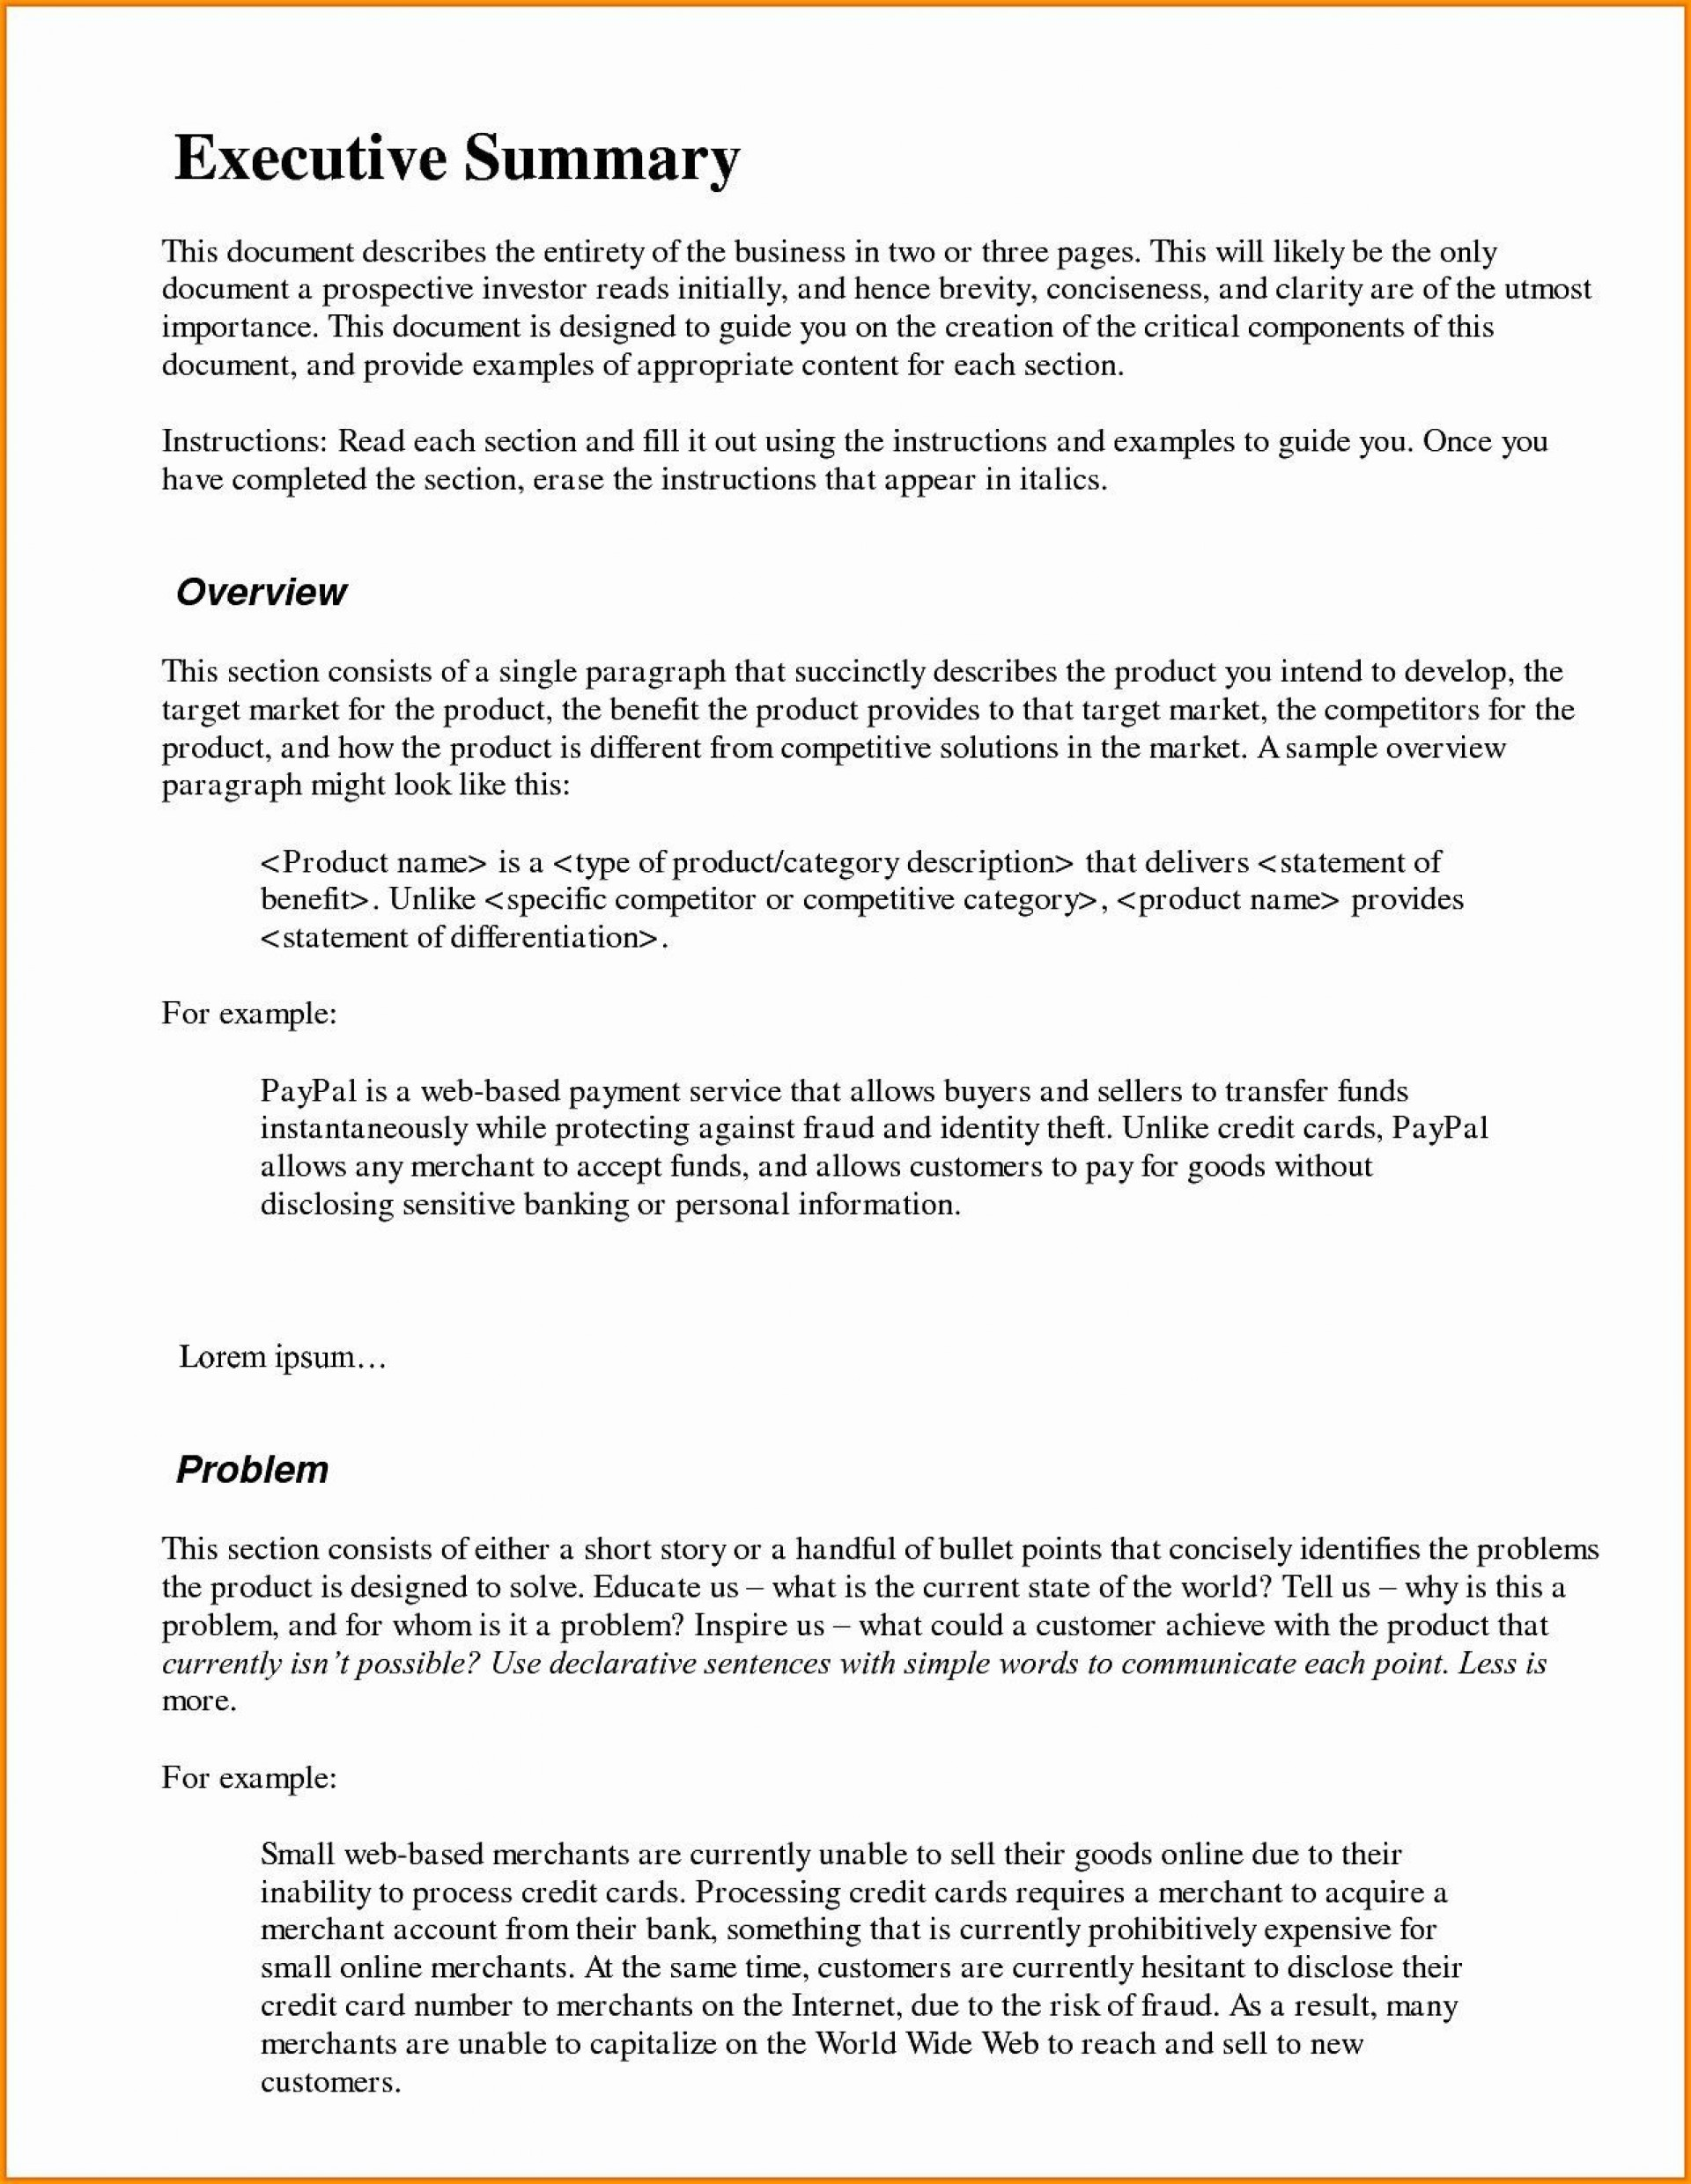 003 Phenomenal Executive Summary Word Template Free Download High Def 1920